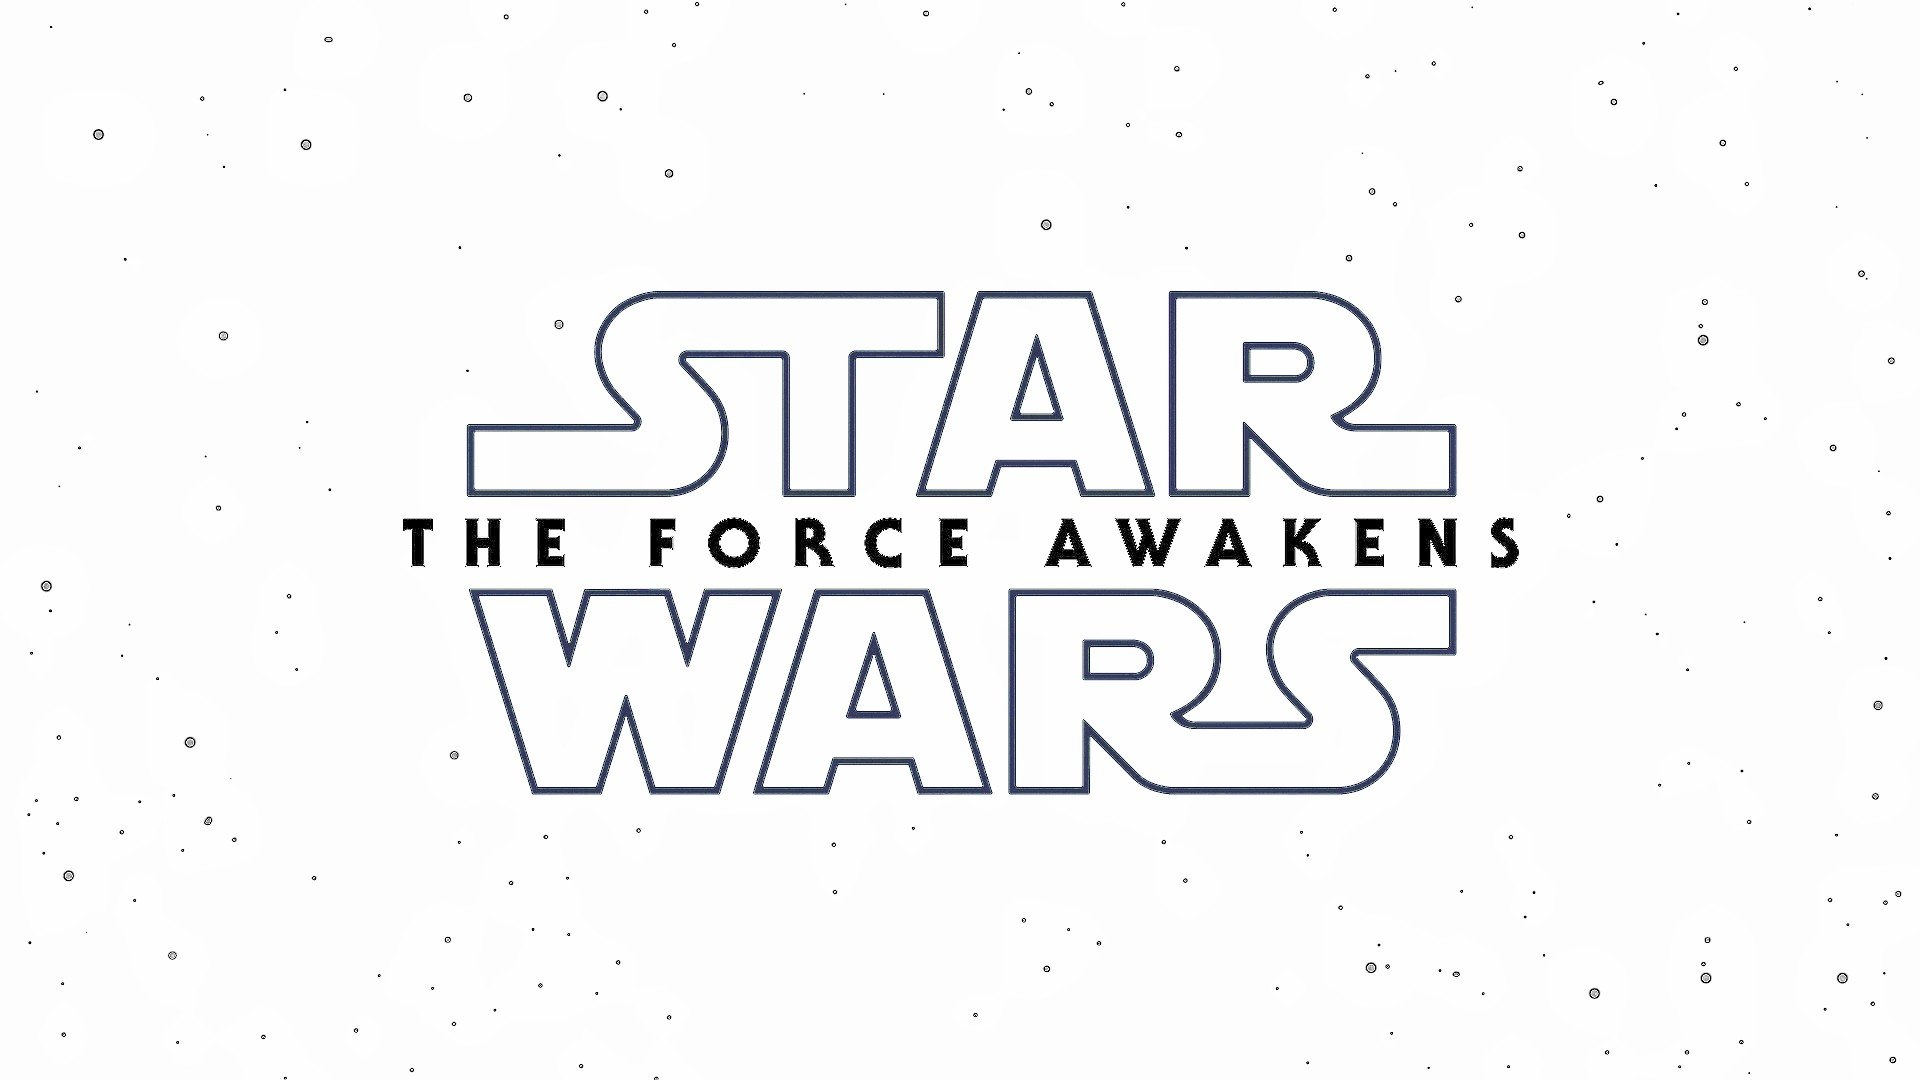 STAR WARS FORCE AWAKENS 1080p